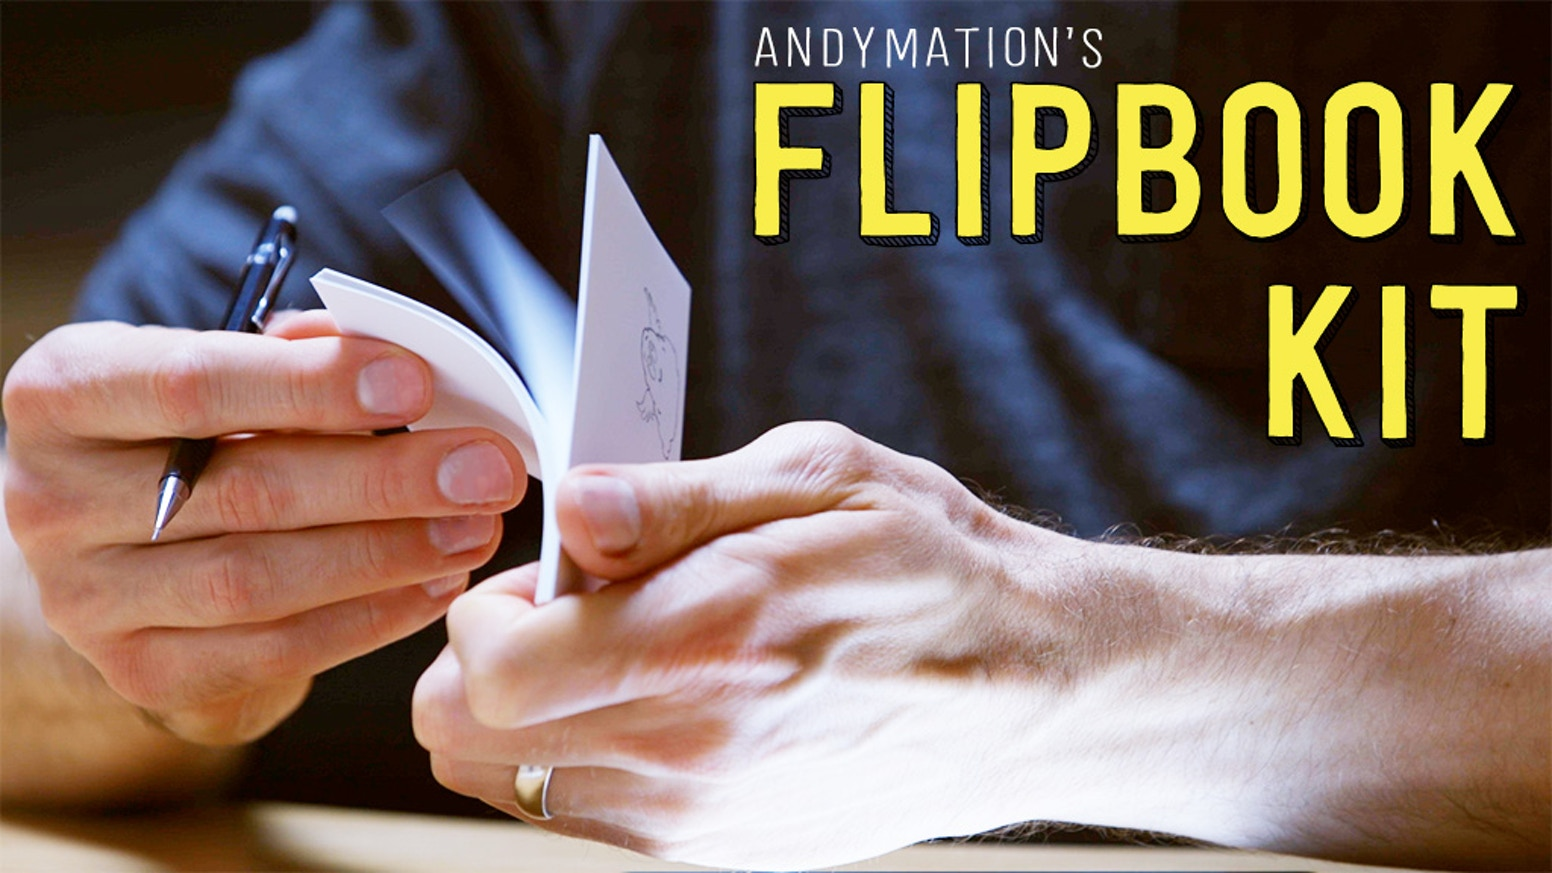 Make your own amazing flipbook animations with Andymation's Flipbook Kit!